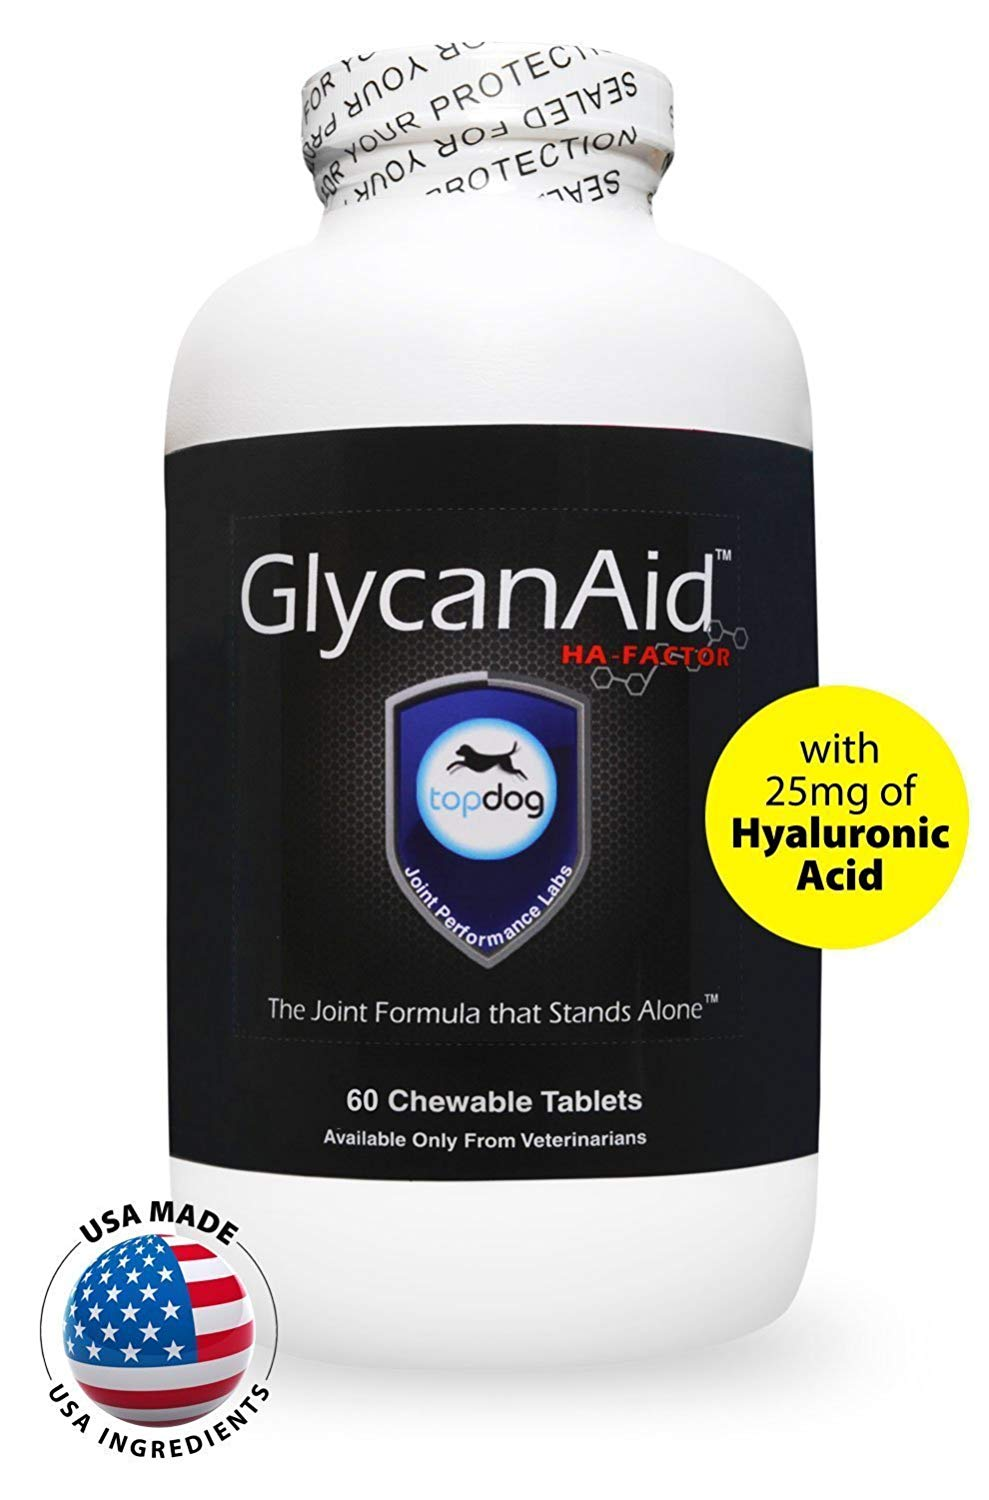 TopDog Health GlycanAid-HA Advanced Joint Supplement for Dogs (60 Chewable Tablets) - Made in USA with USA Ingredients - Contains Glucosamine HCL, Chondroitin Sulfate, Hyaluronic Acid, MSM, Cetyl-M